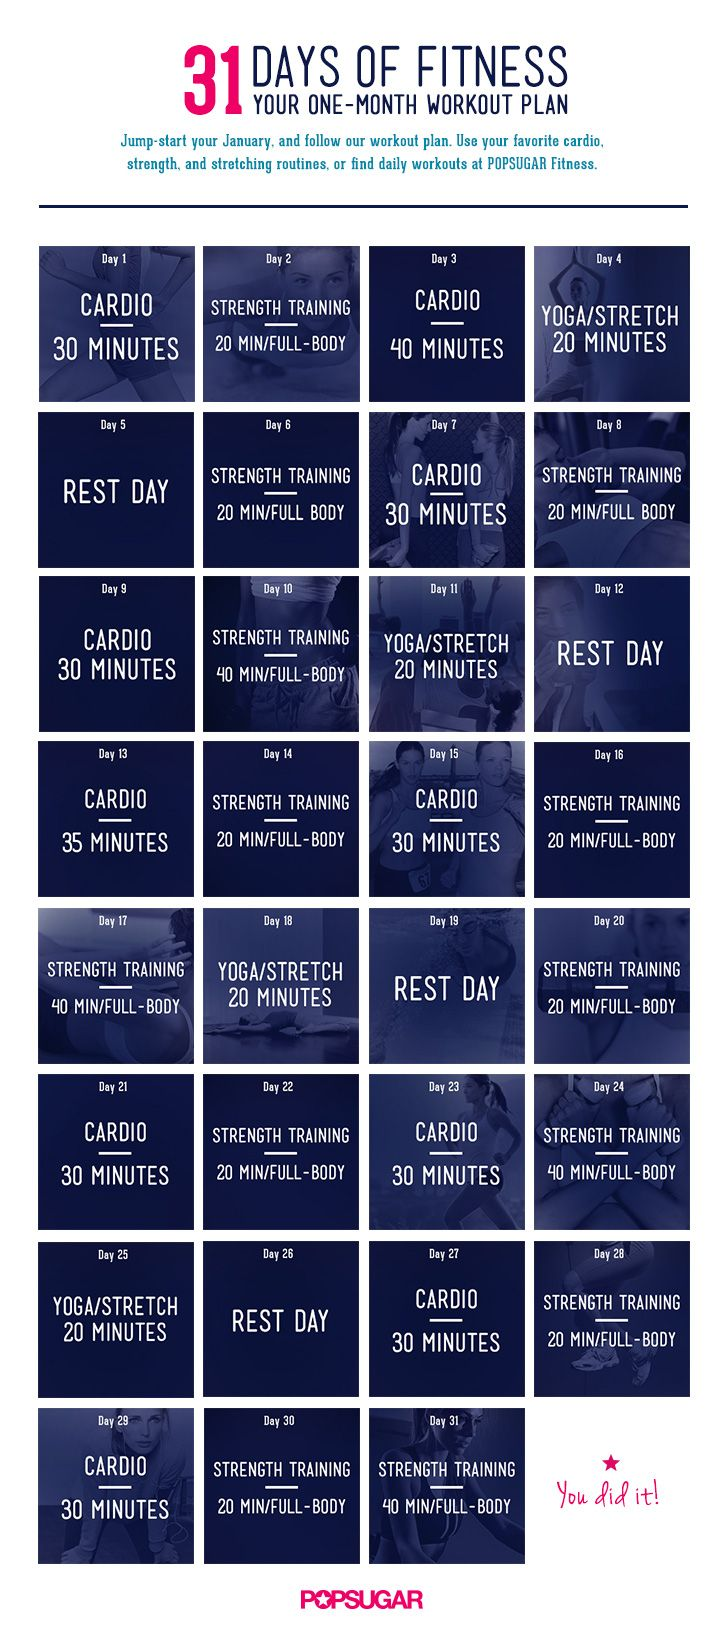 Weekly Workout Plan For Weight Loss At Home